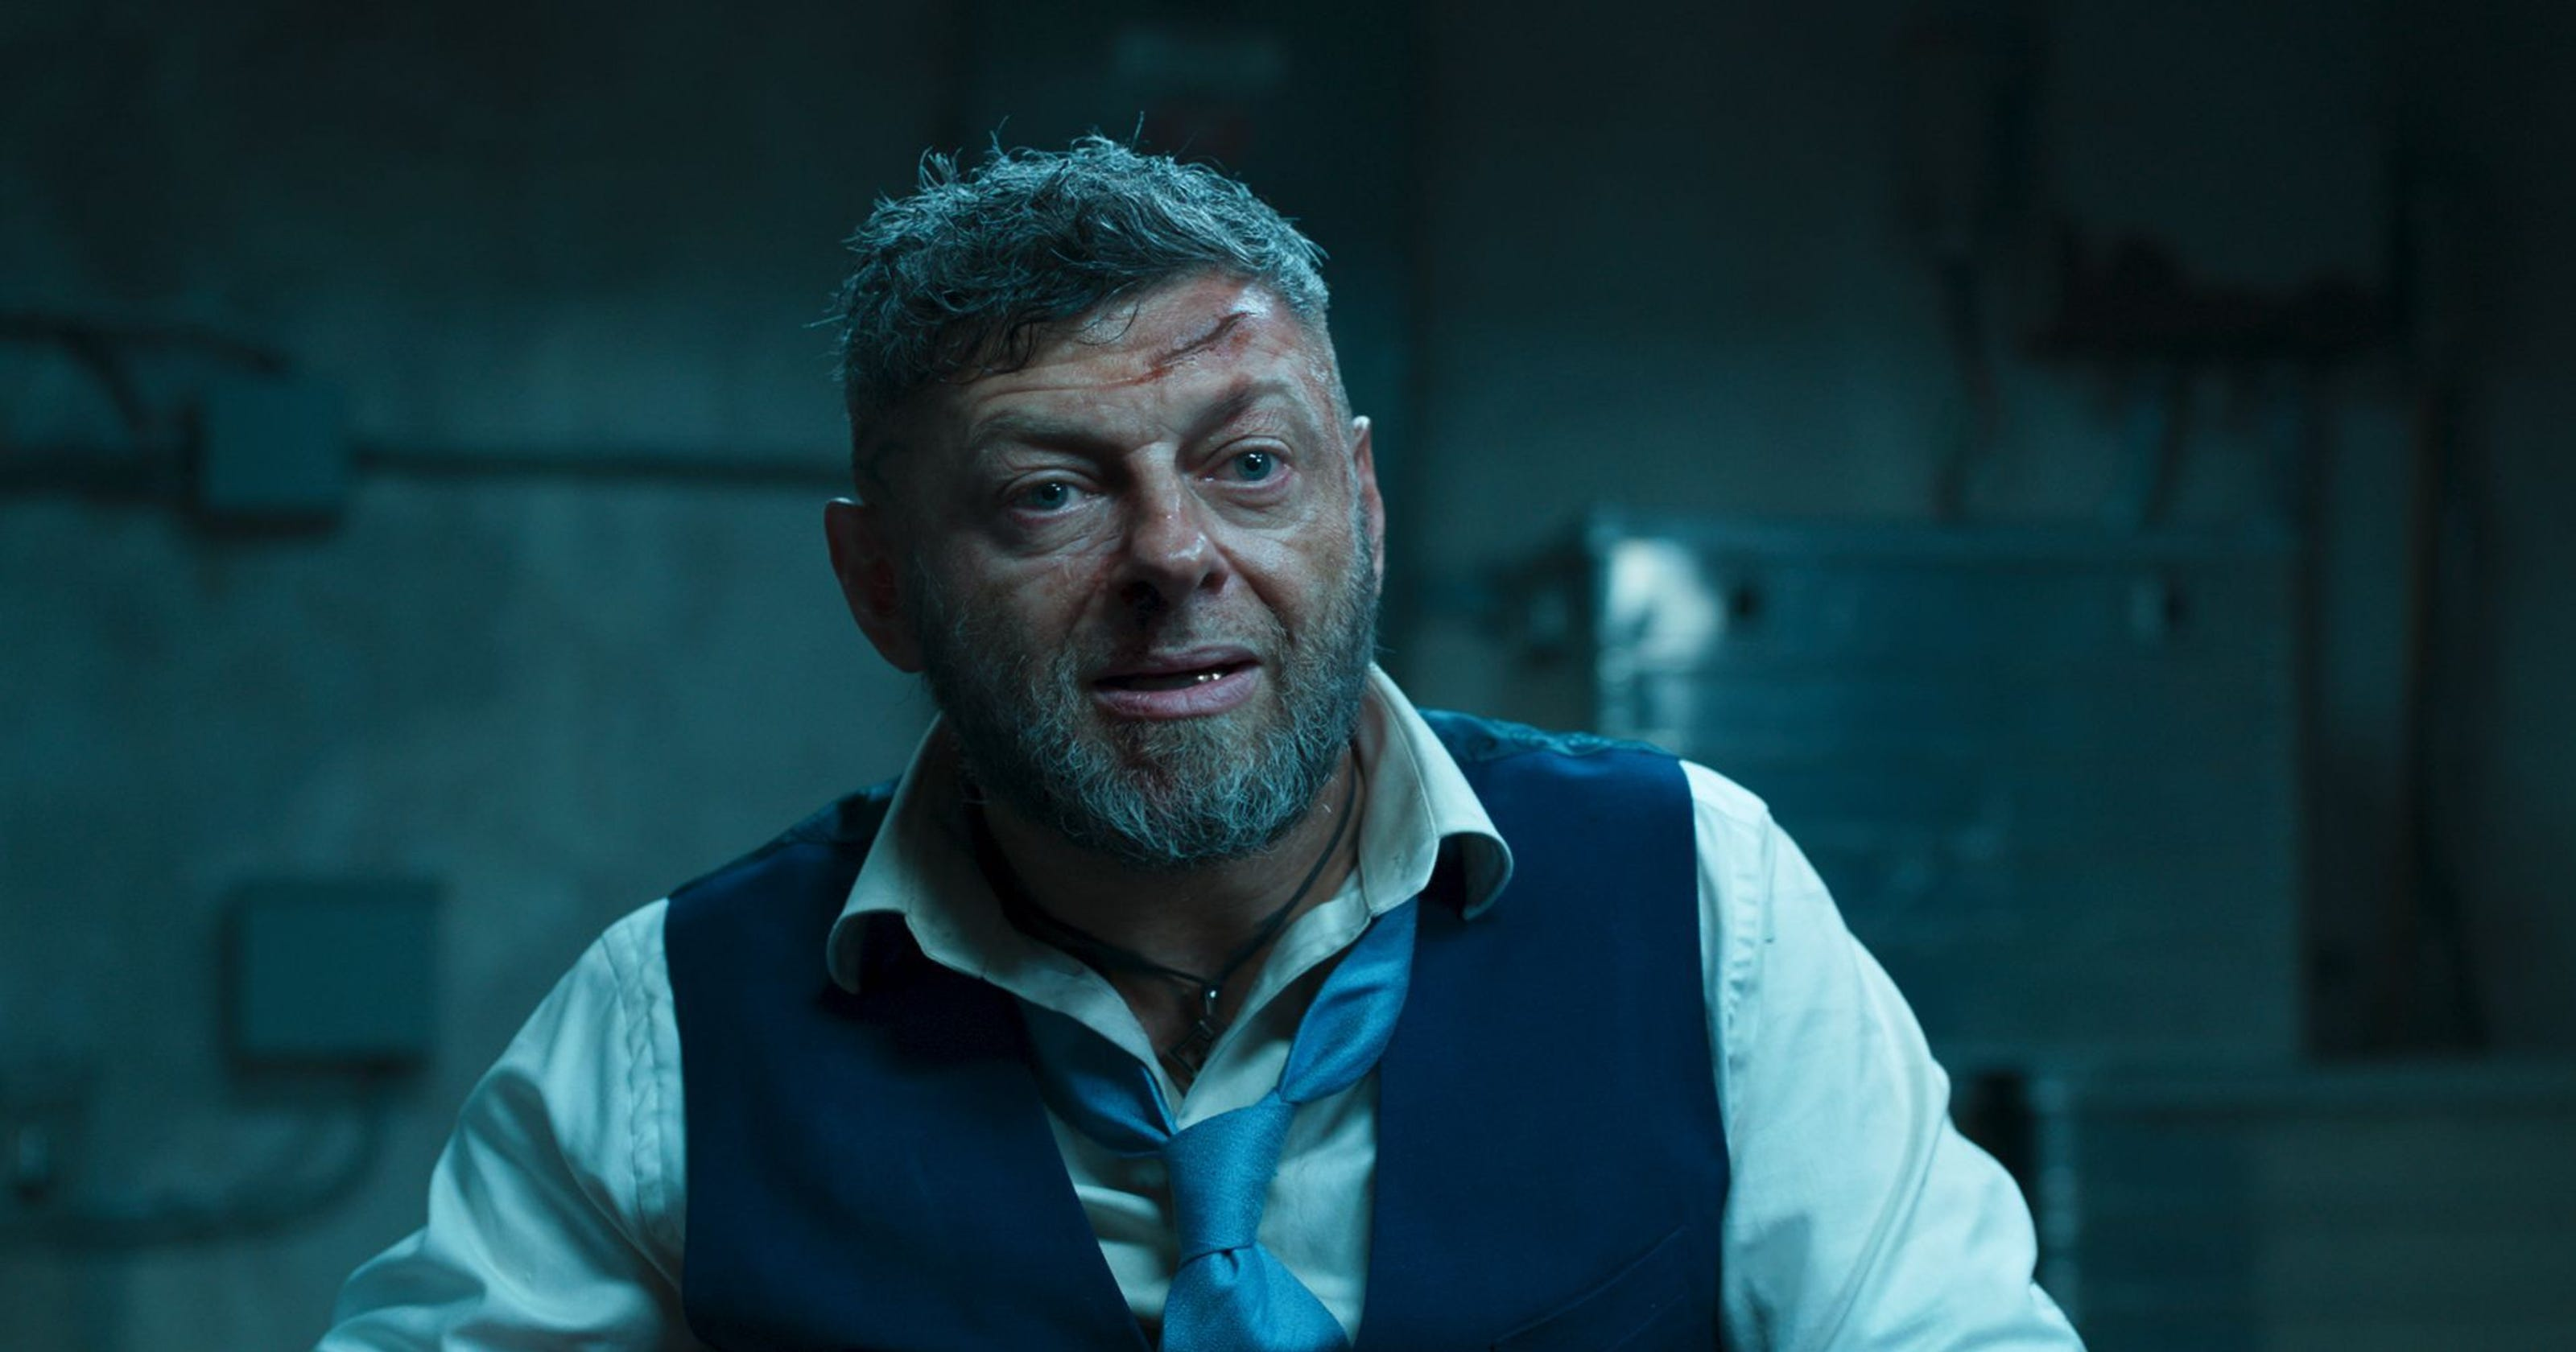 Black Panther': Why Andy Serkis had a rough year onscreen